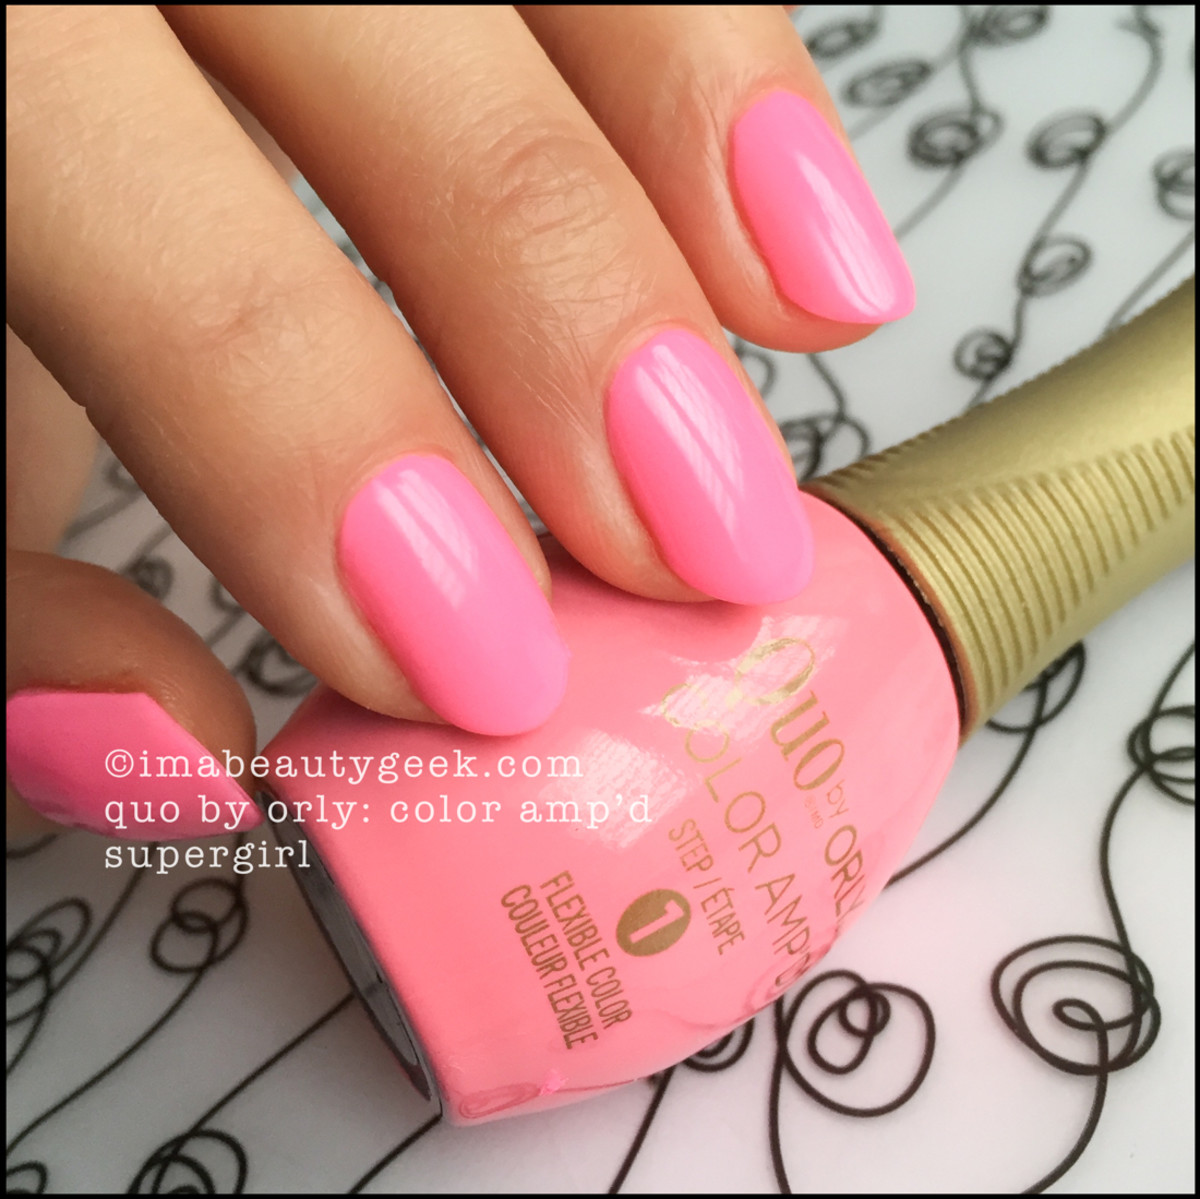 Quo by Orly SuperGirl_Orly Color Ampd Epix Swatches